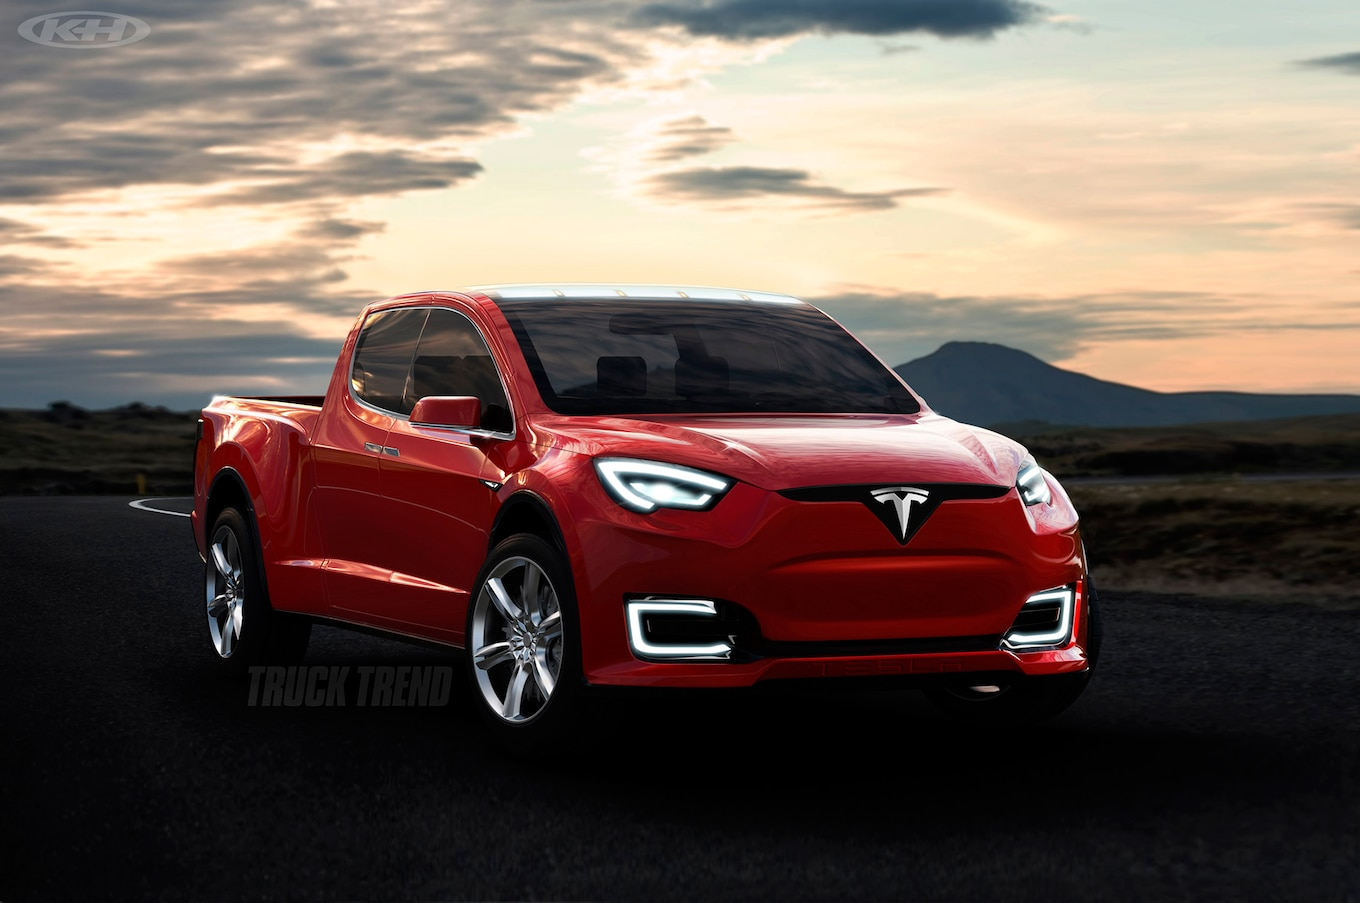 Future Cars 2018 Wallpapers Tesla Still Plans To Build A Pickup Truck Elon Musk Says